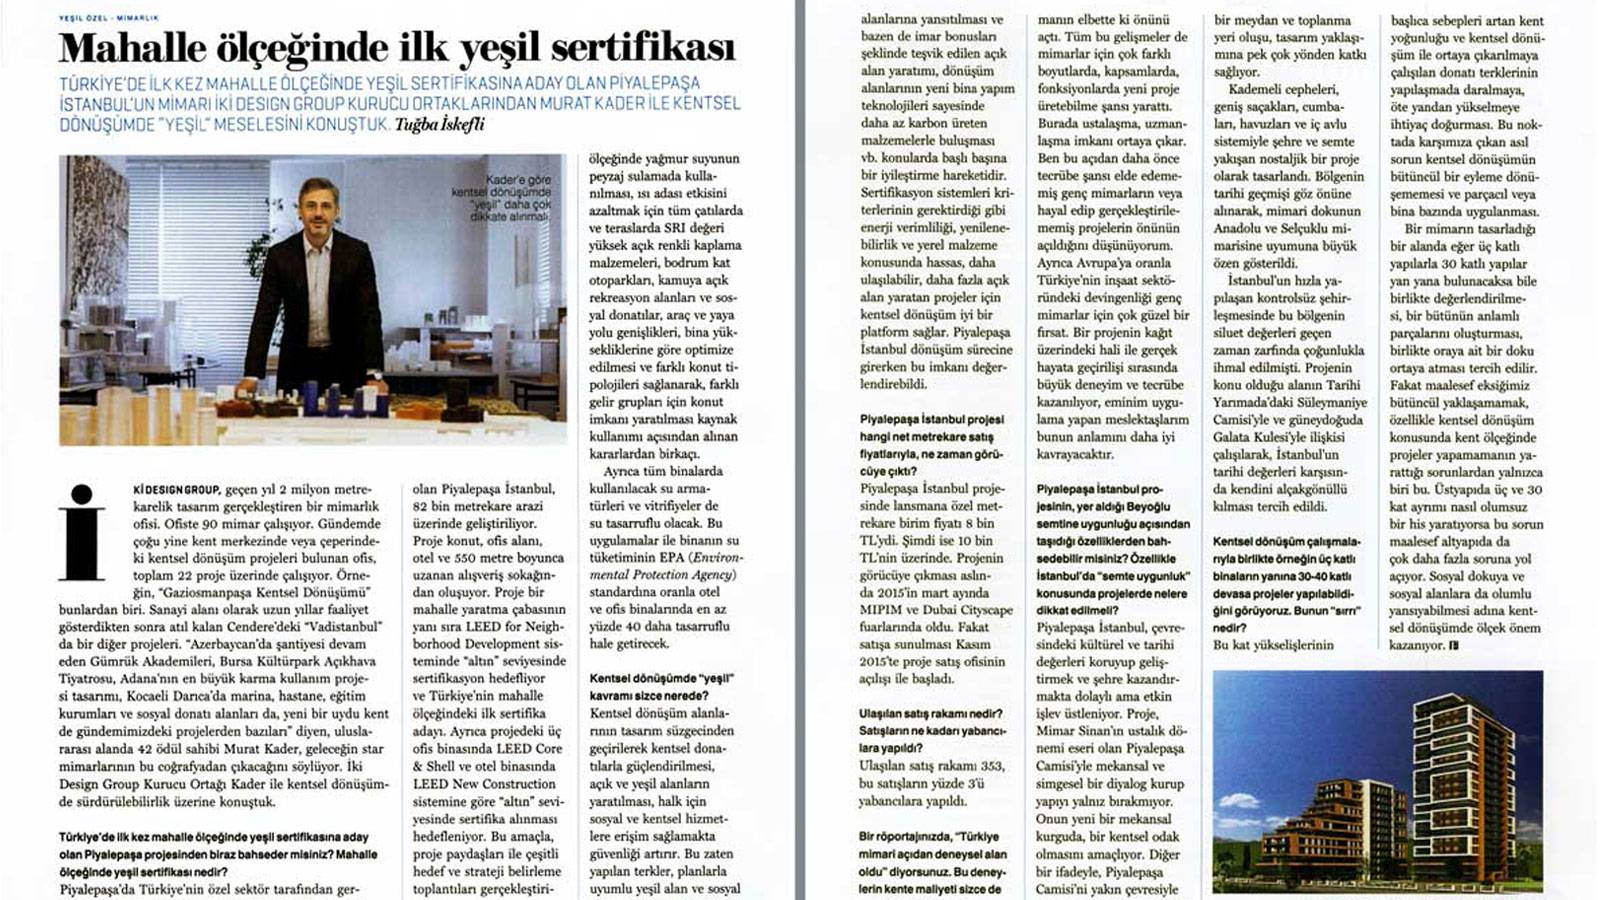 01.06.2016 Fortune Magazine 105th edition host Murat Kader, mentioned about iki design group's award